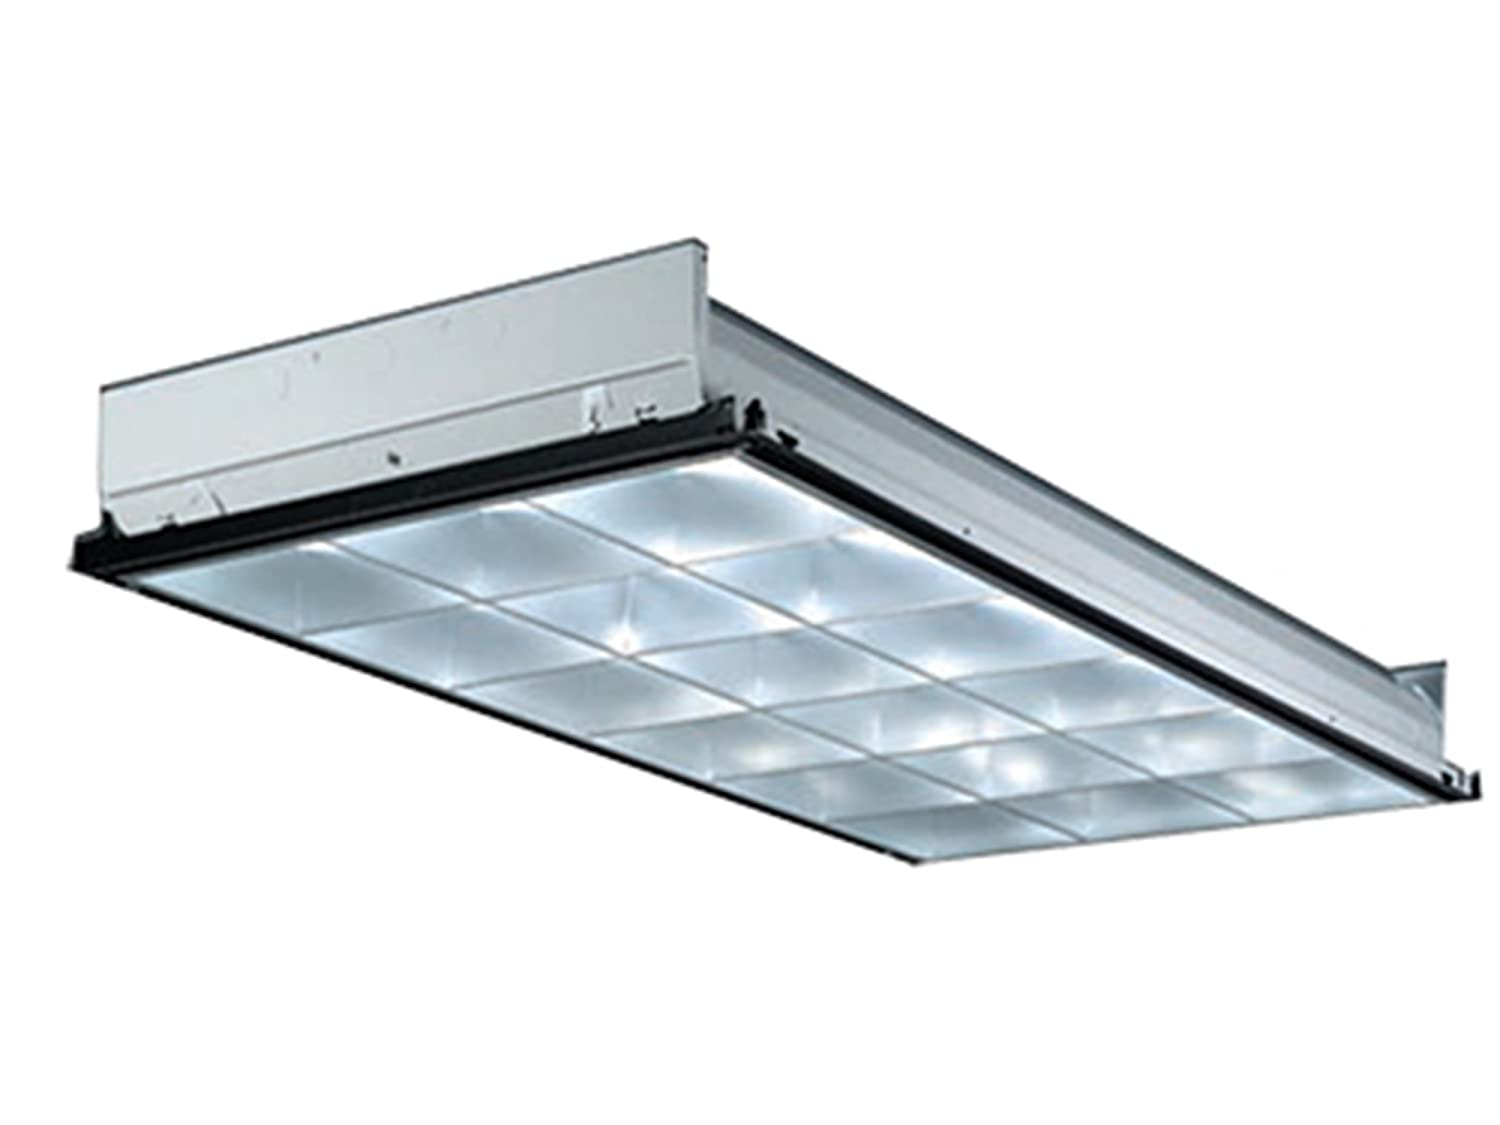 Lithonia lighting pt3l mv 3 light fluorescent parabolic troffer 4 lithonia lighting pt3l mv 3 light fluorescent parabolic troffer 4 feet silver under counter fixtures amazon arubaitofo Choice Image